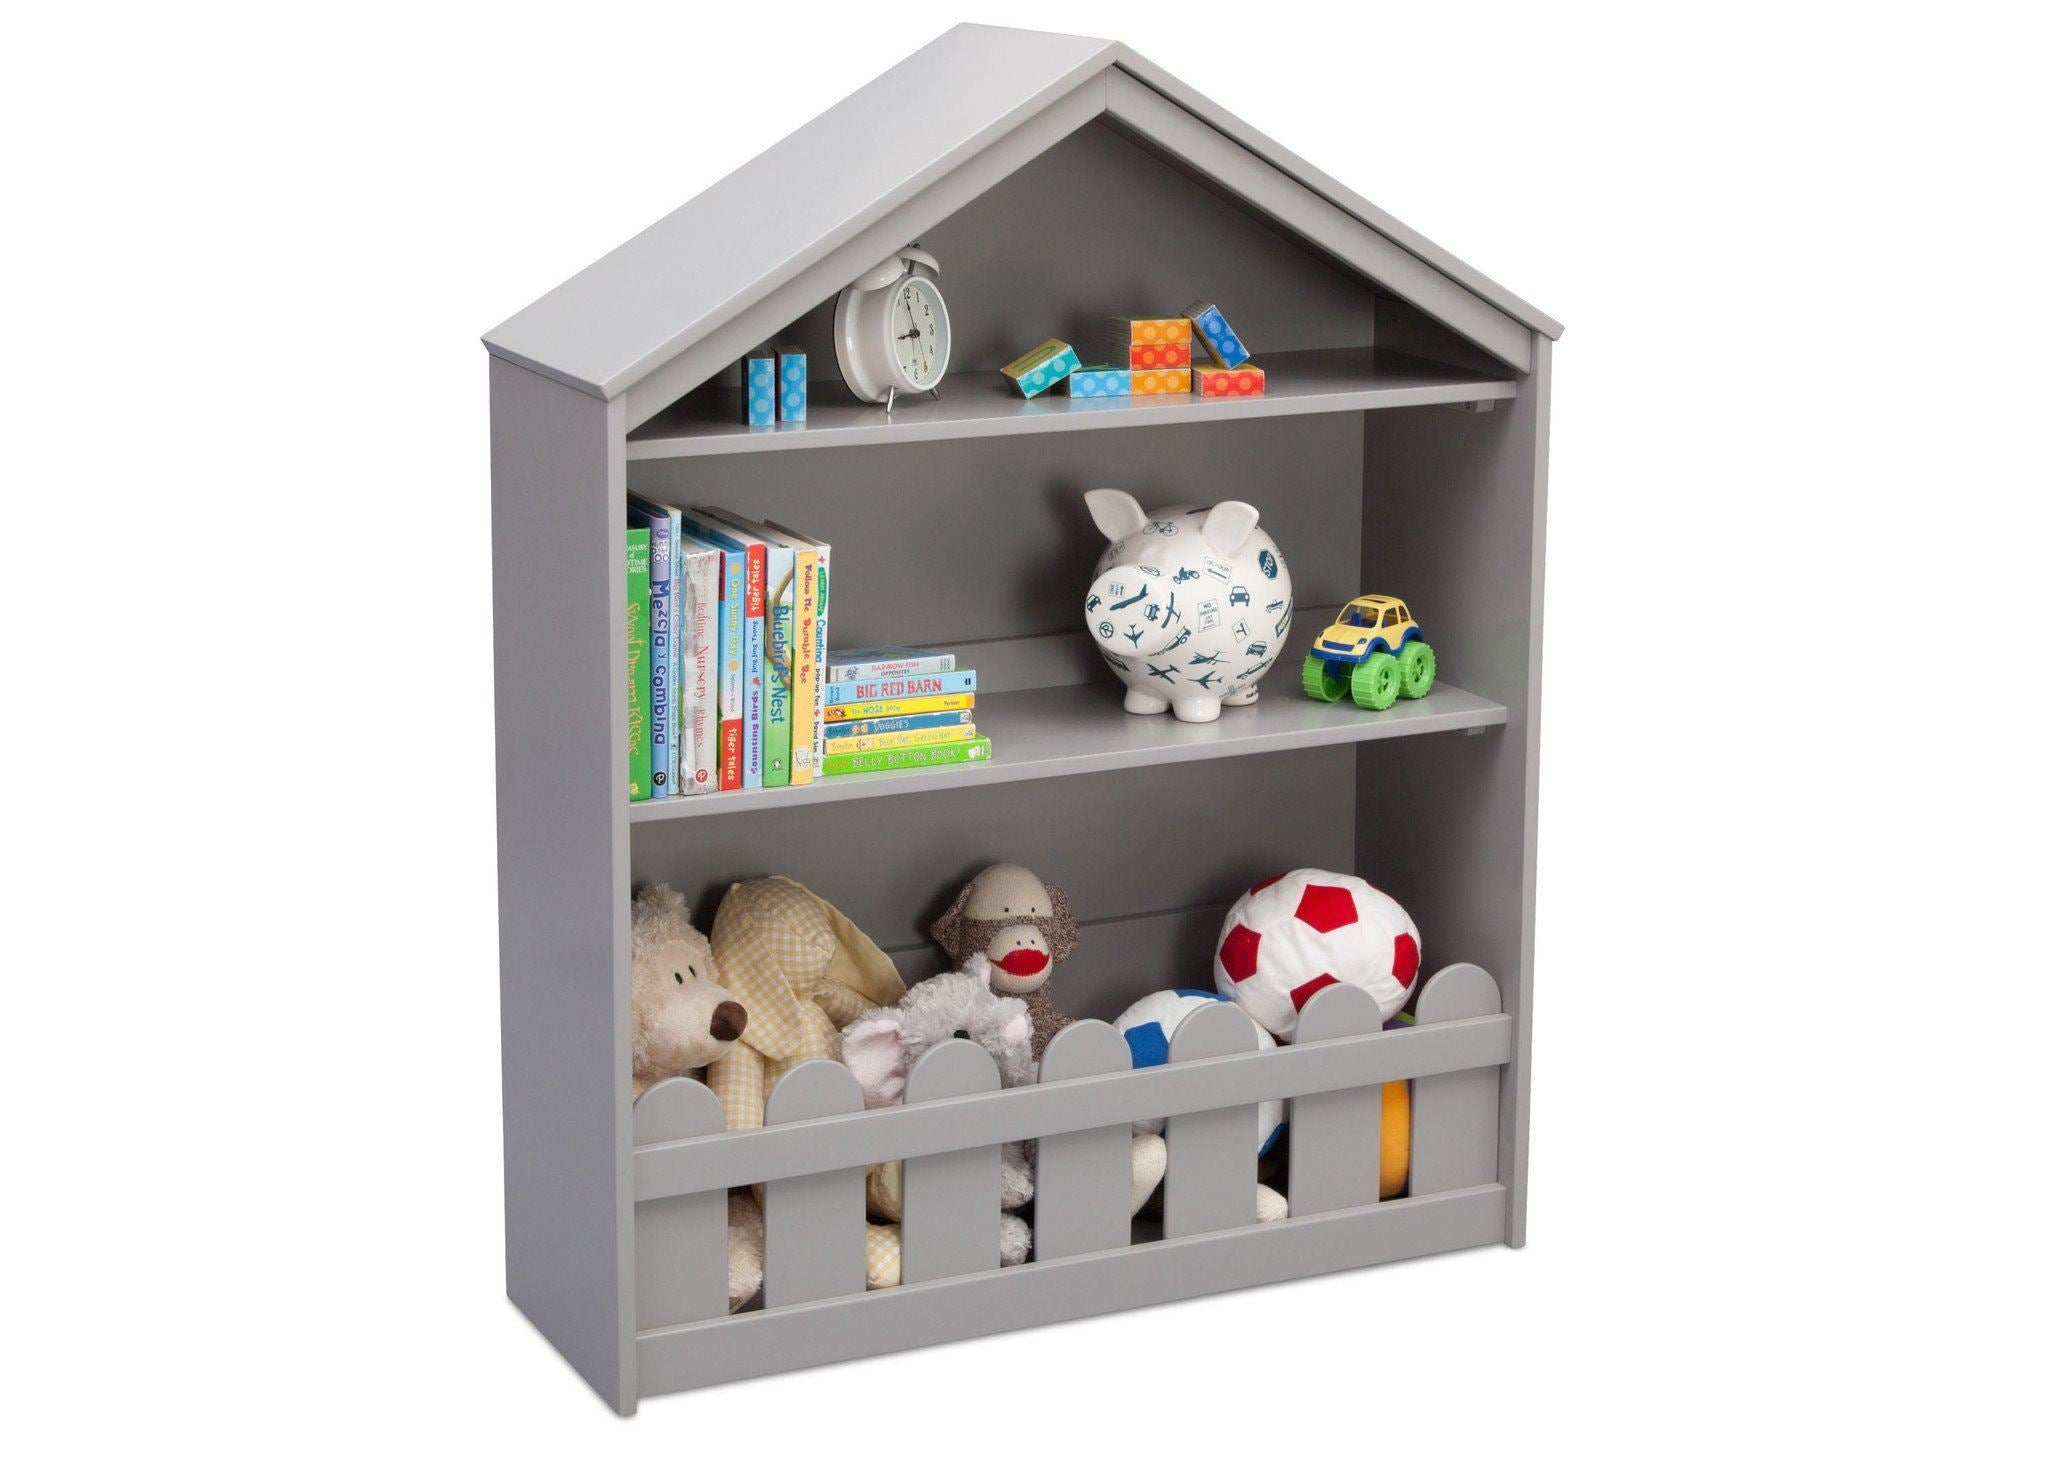 Serta White Grey (026) Happy Home Storage Bookcase a3a